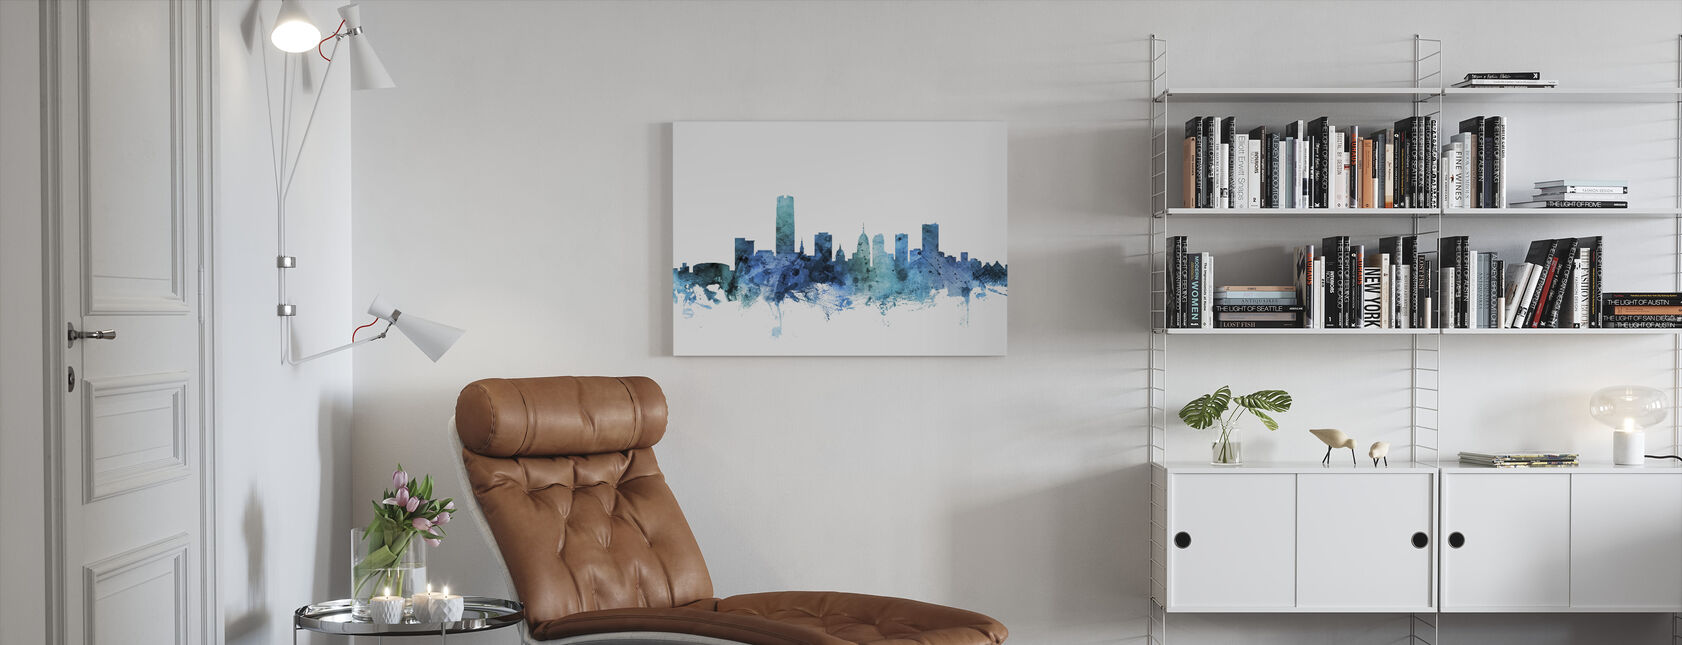 Oklahoma City Skyline - Canvas print - Living Room